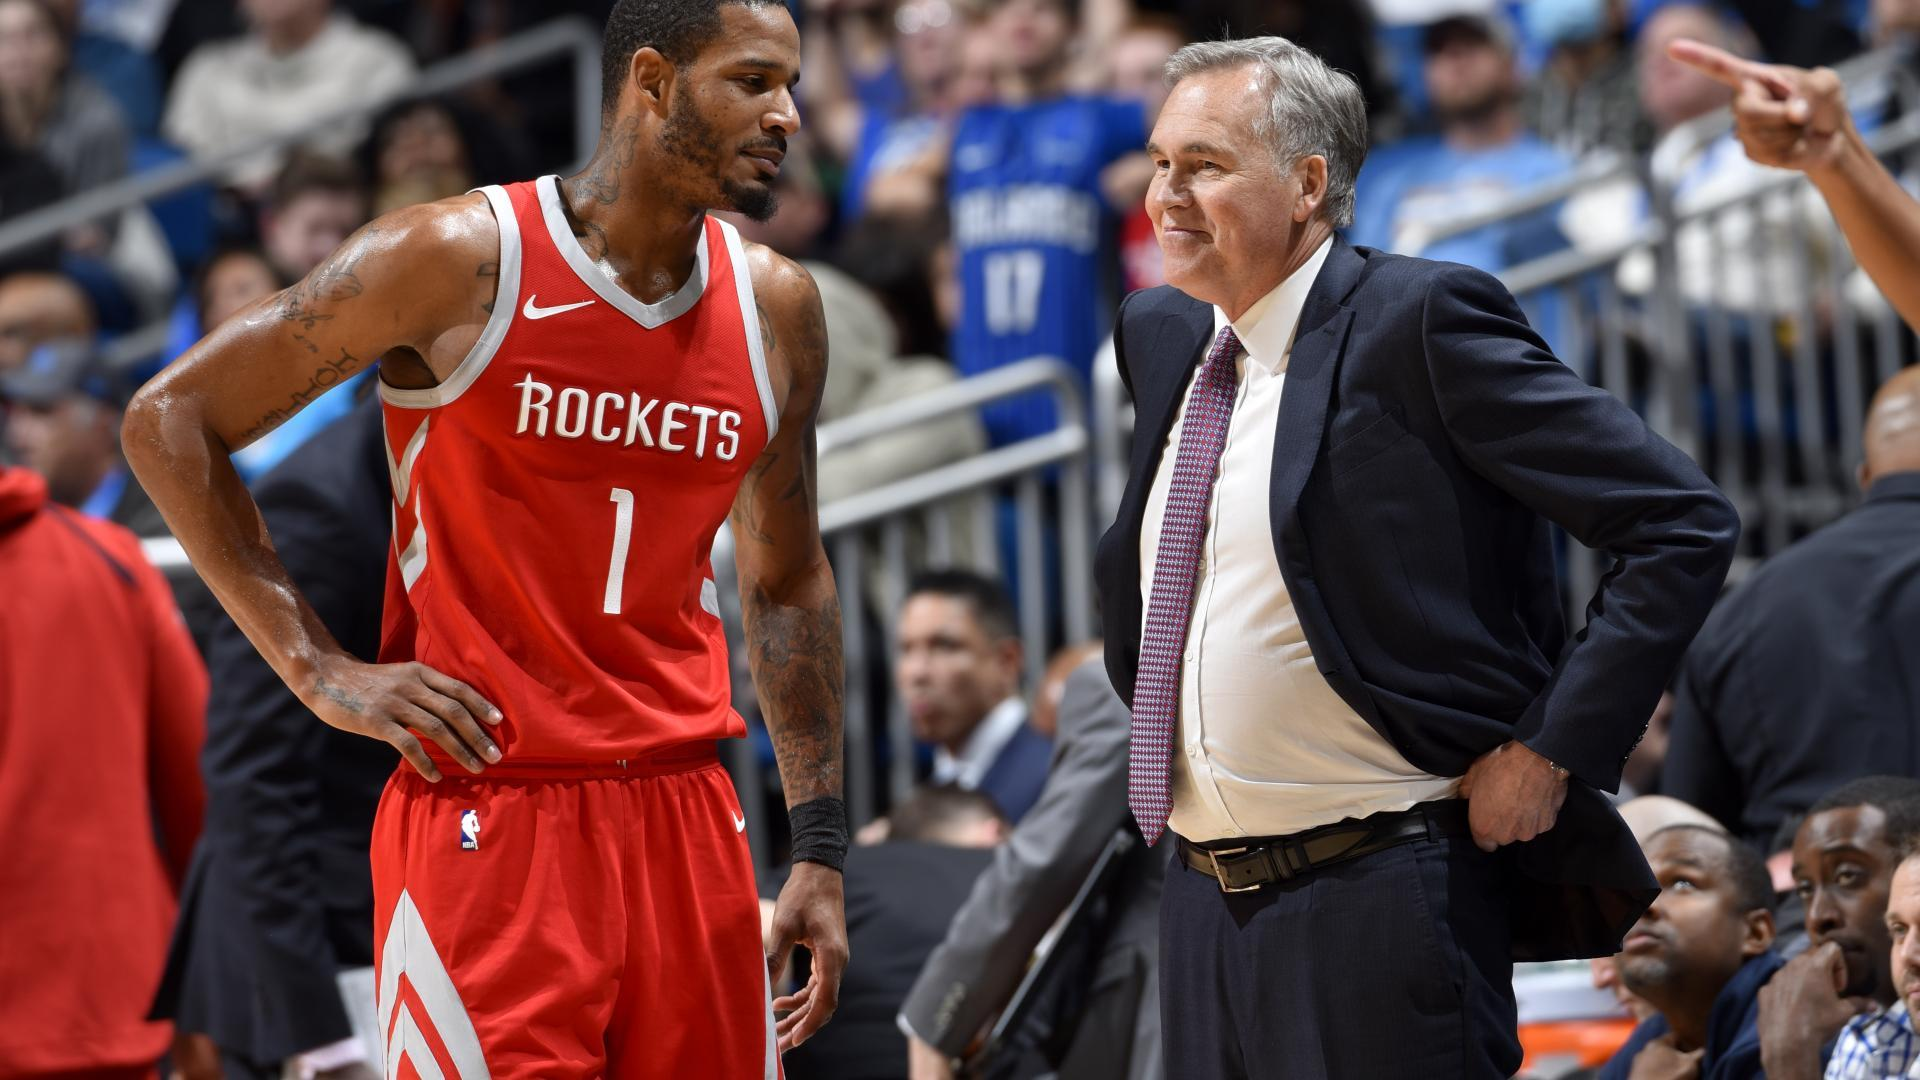 Doc Rivers rips referees after loss to Rockets